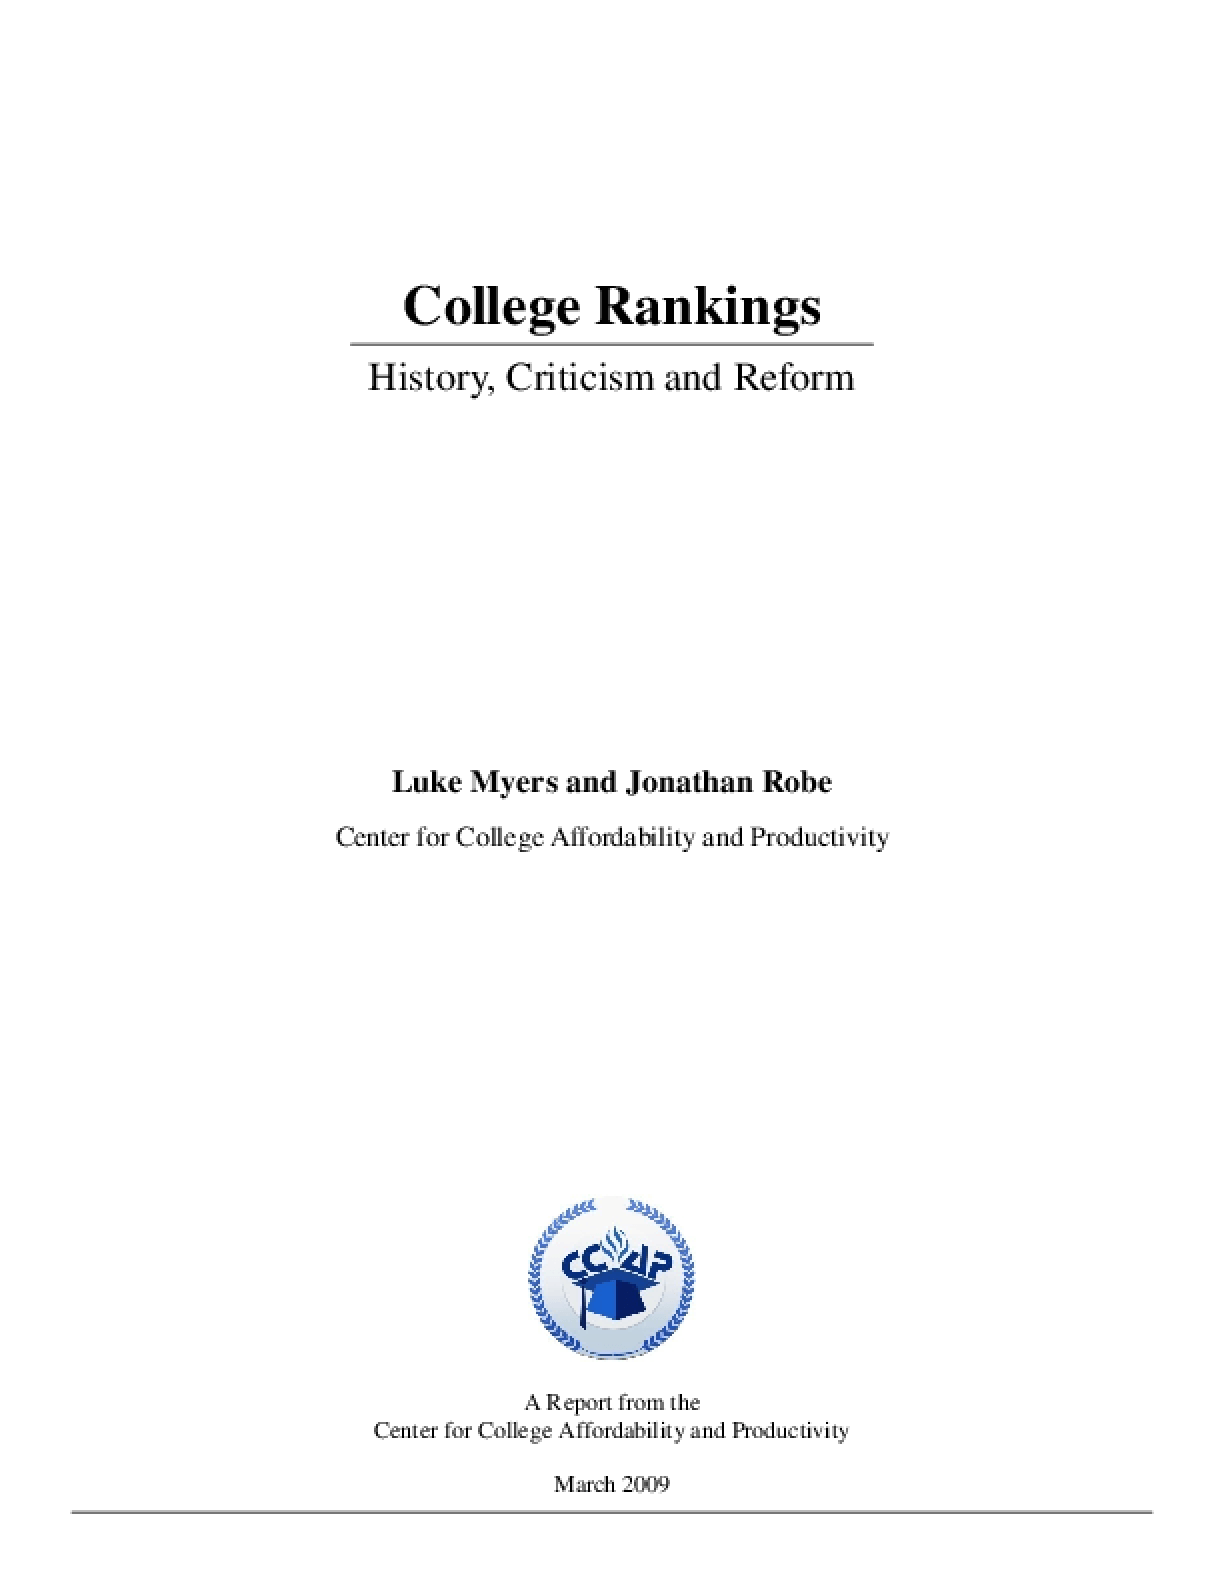 College Rankings - History, Criticism and Reform